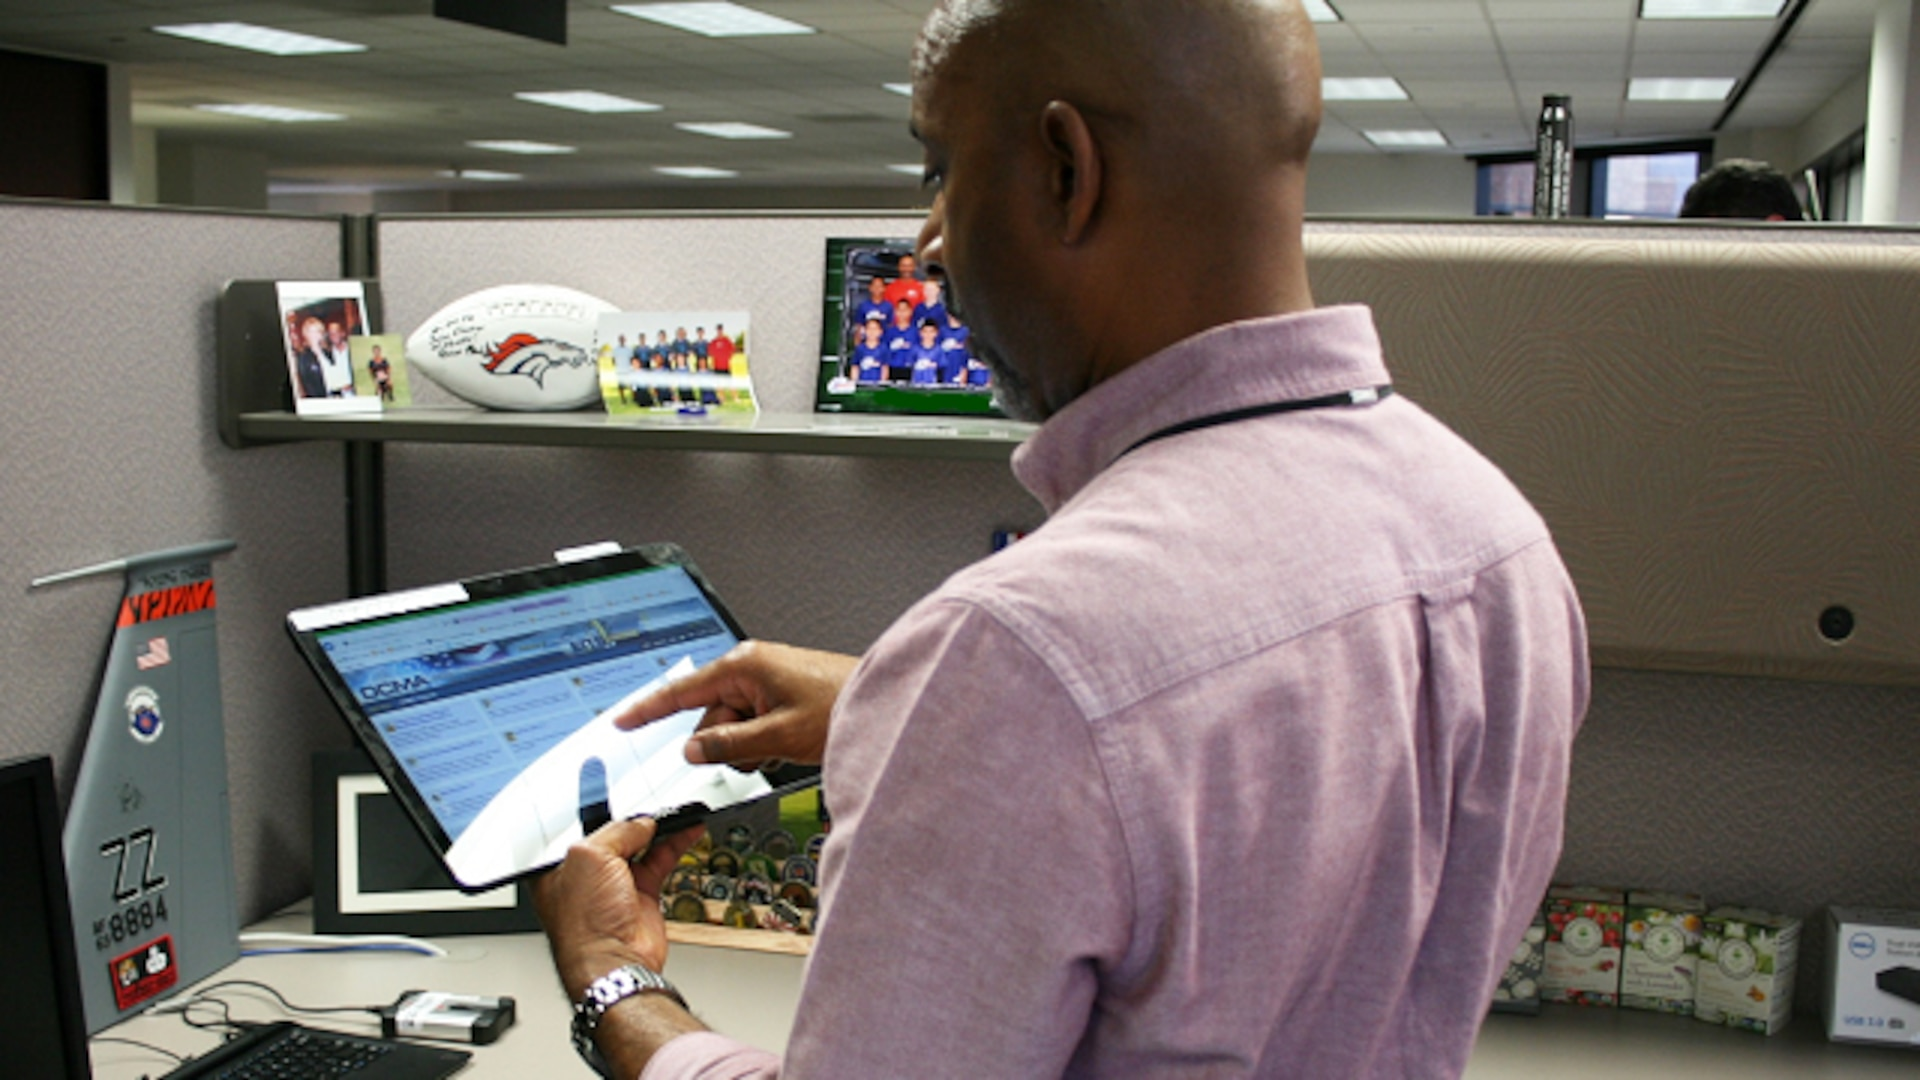 Mychael Bland, Defense Contract Management Agency Phoenix quality assurance specialist, uses a newly deployed 2-in-1 tablet computer to launch the agency's eTools applications. (Photo courtesy of DCMA Phoenix)